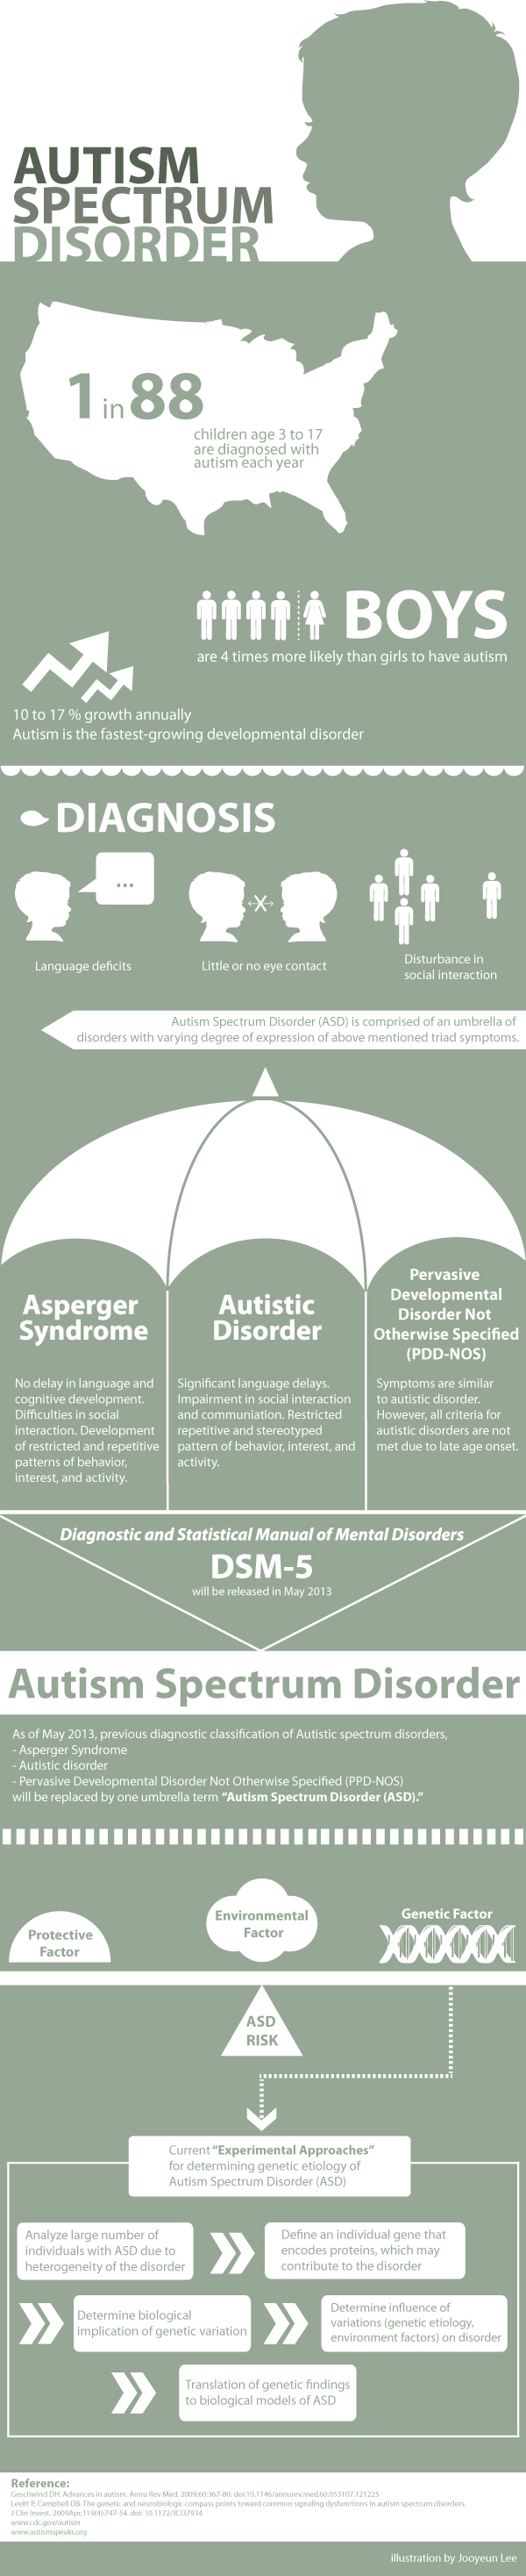 Autism Spectrum Disorder Fact Sheet | National Institute ...